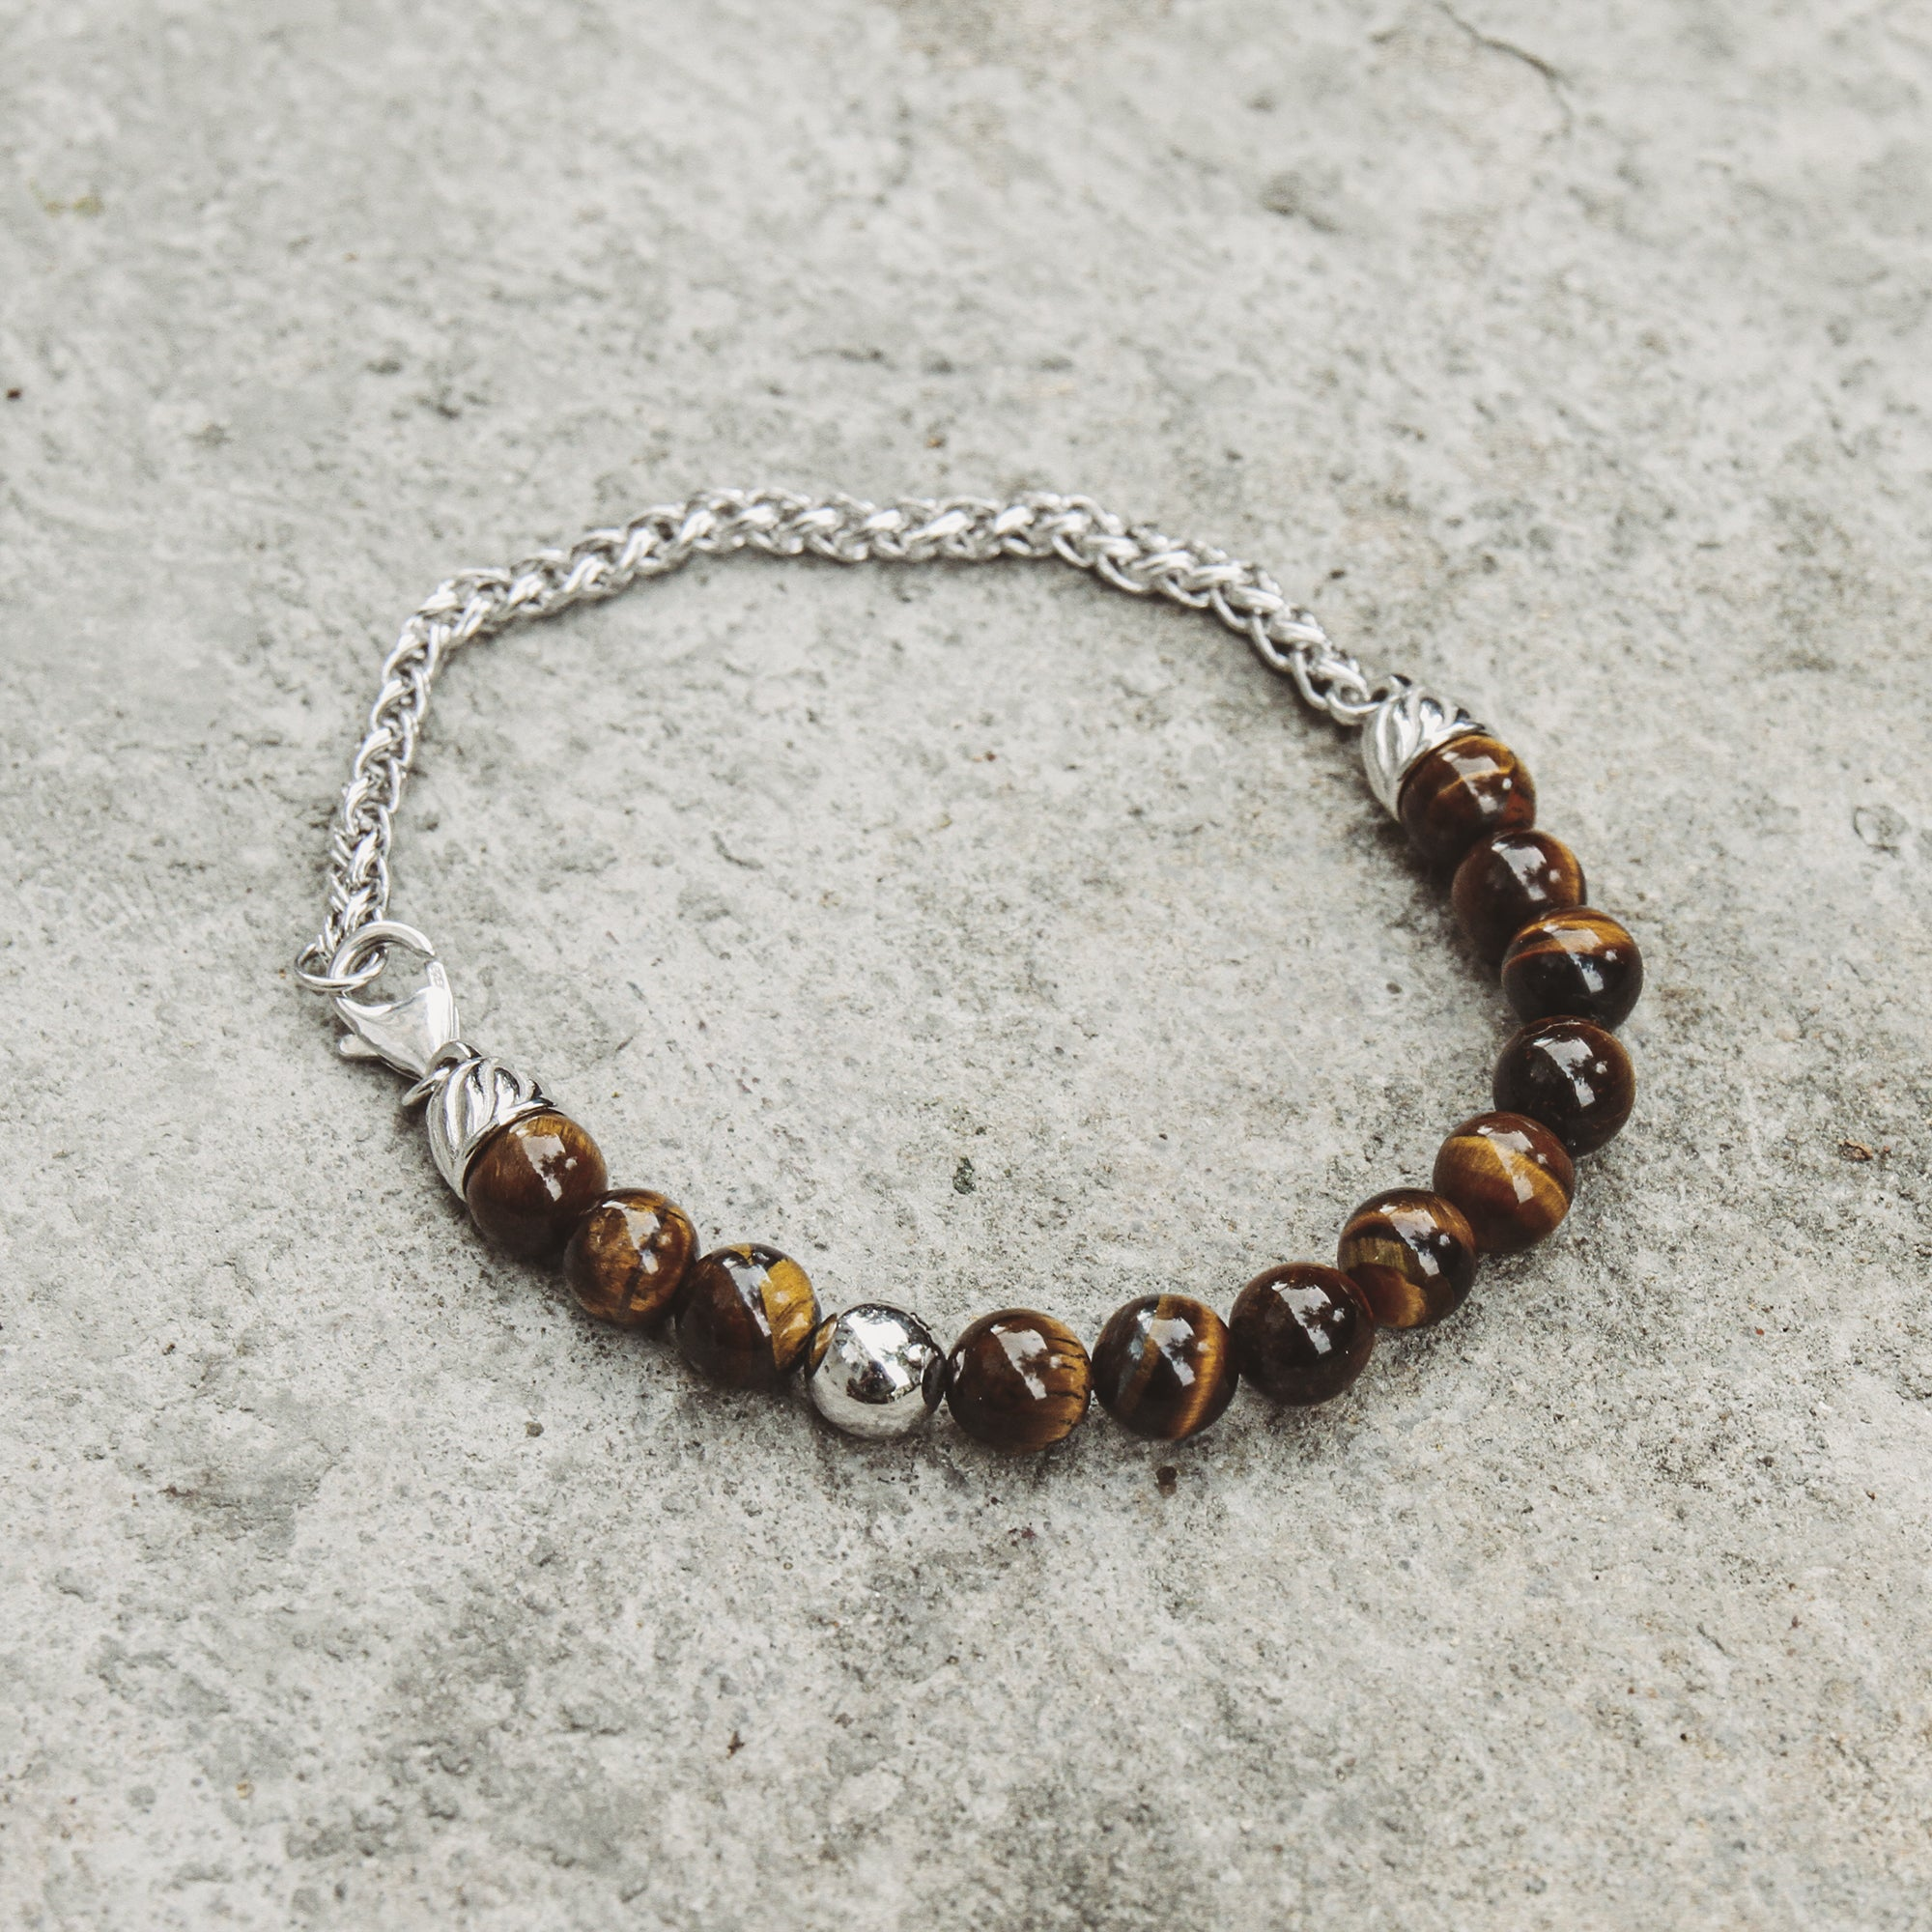 VAN | Woven Chain Bracelet with Tiger Eye Beads